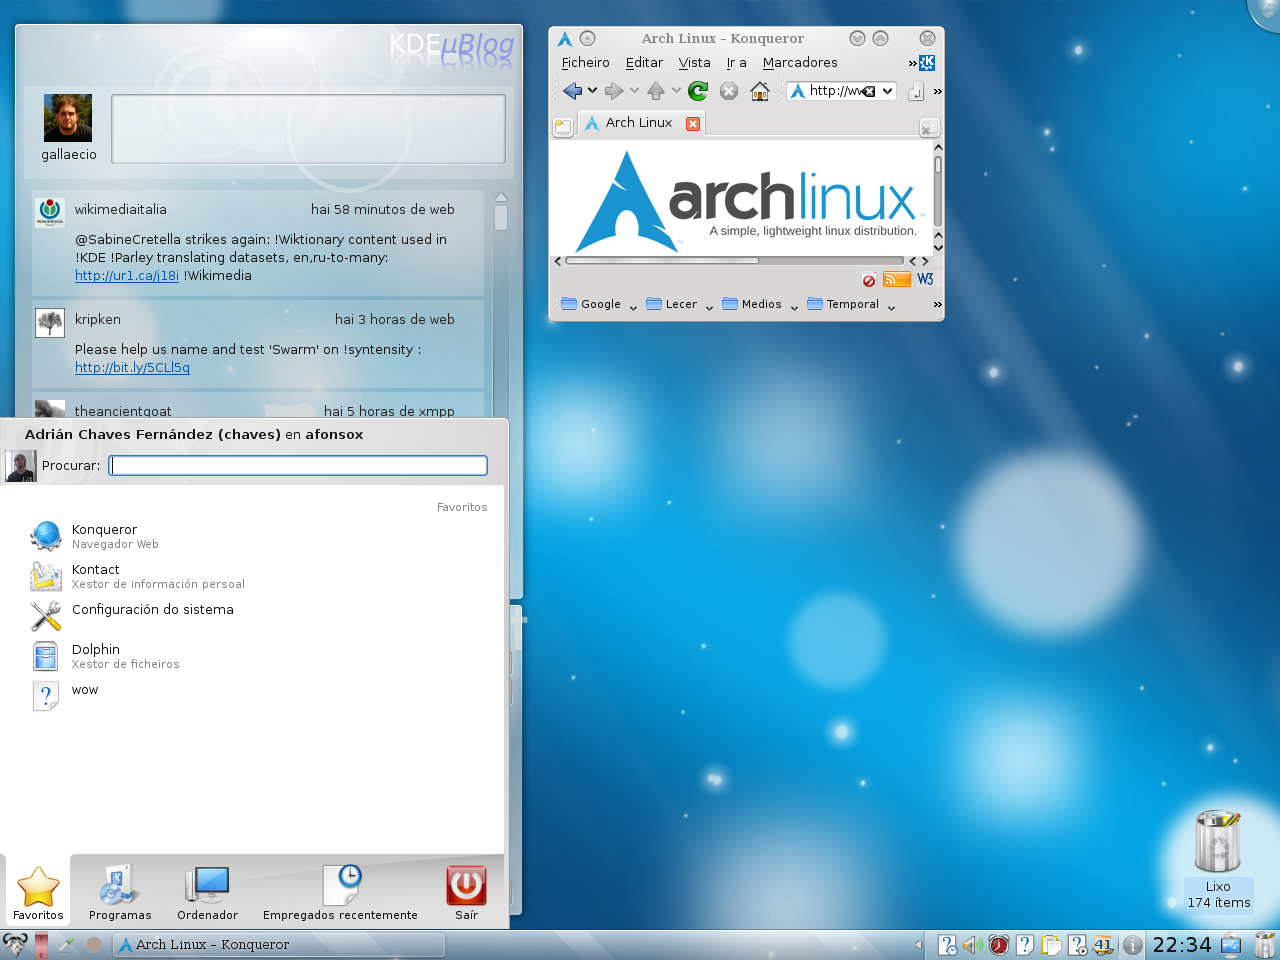 File:Arch-linux-kdemod4-screenshot-gl png - Wikimedia Commons